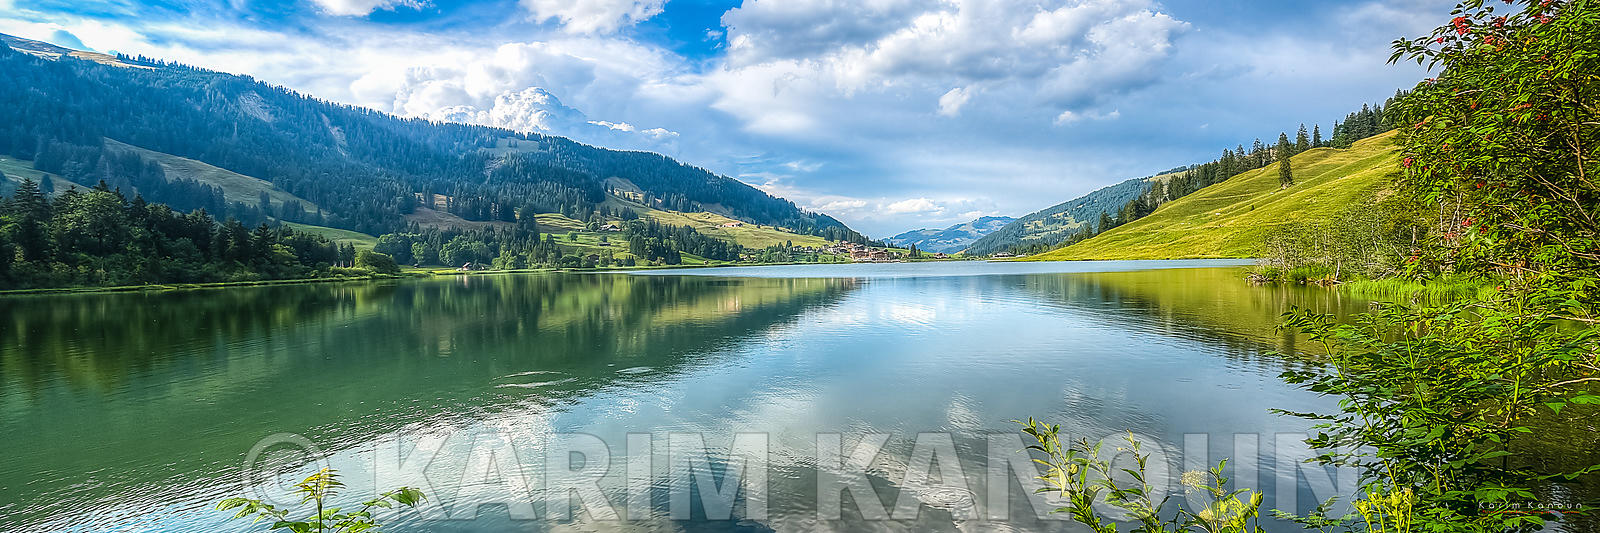 Panorama - Lake Reflection - schwarzsee